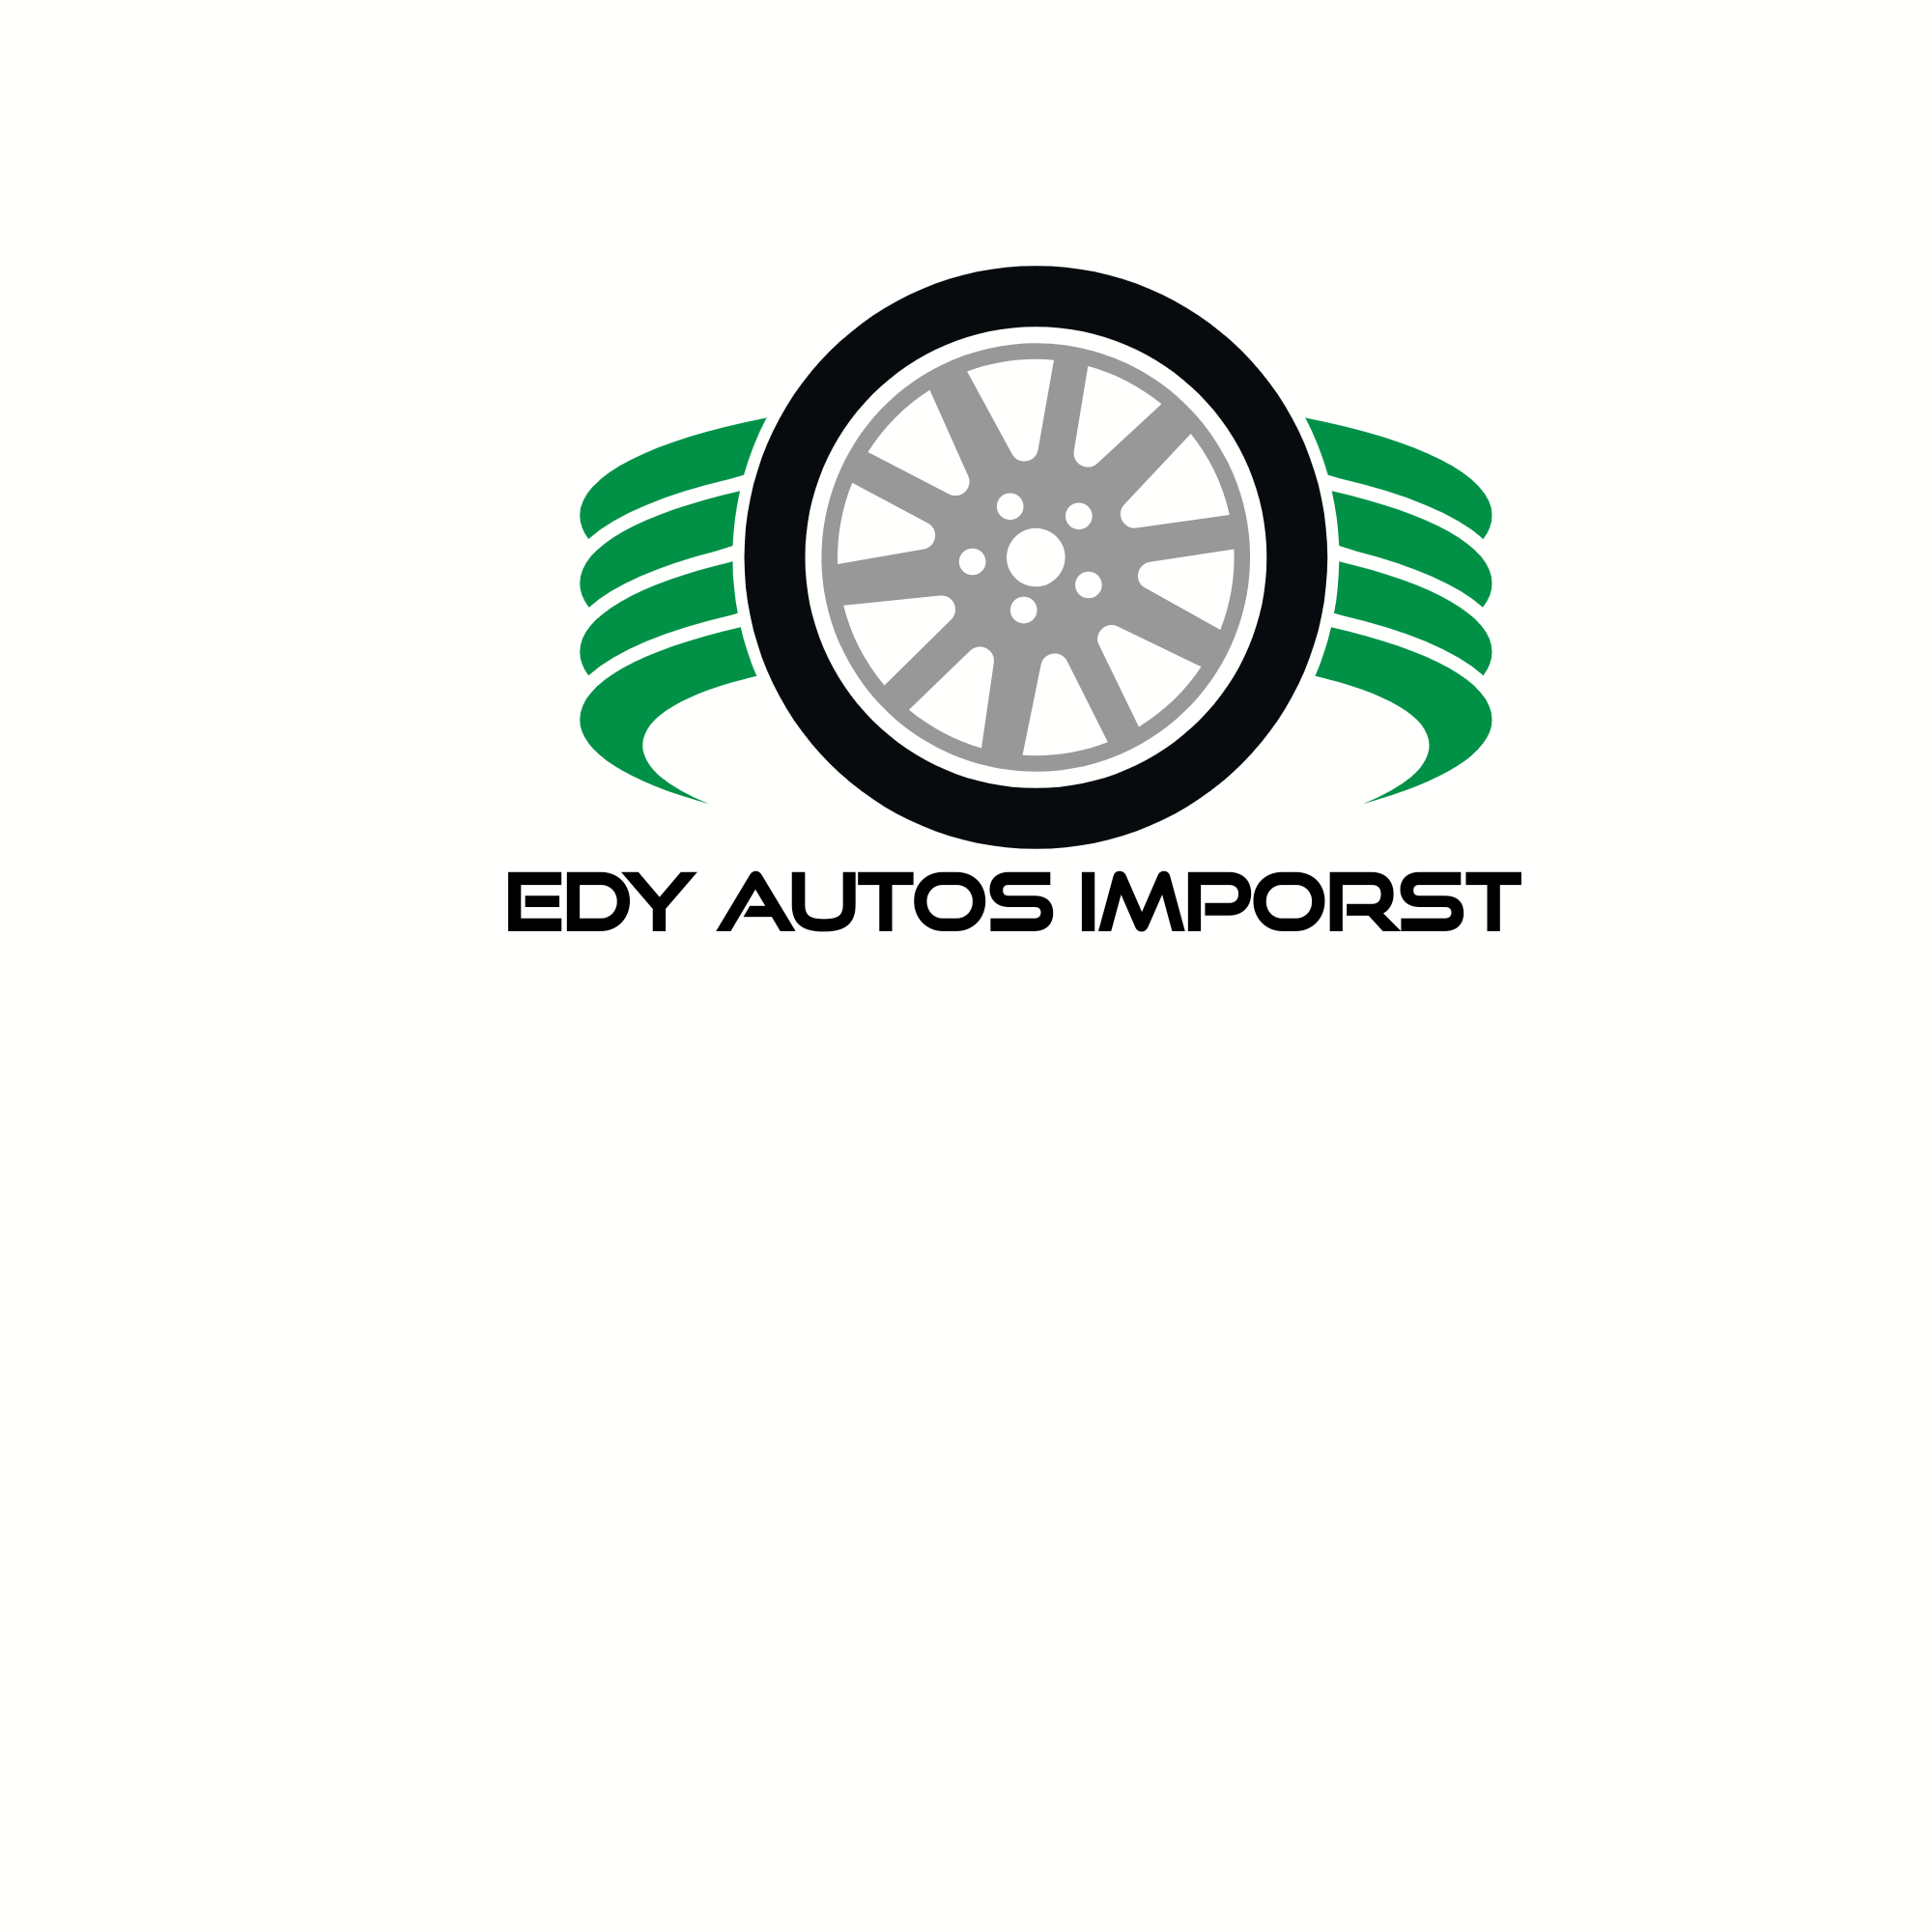 Edy autos import